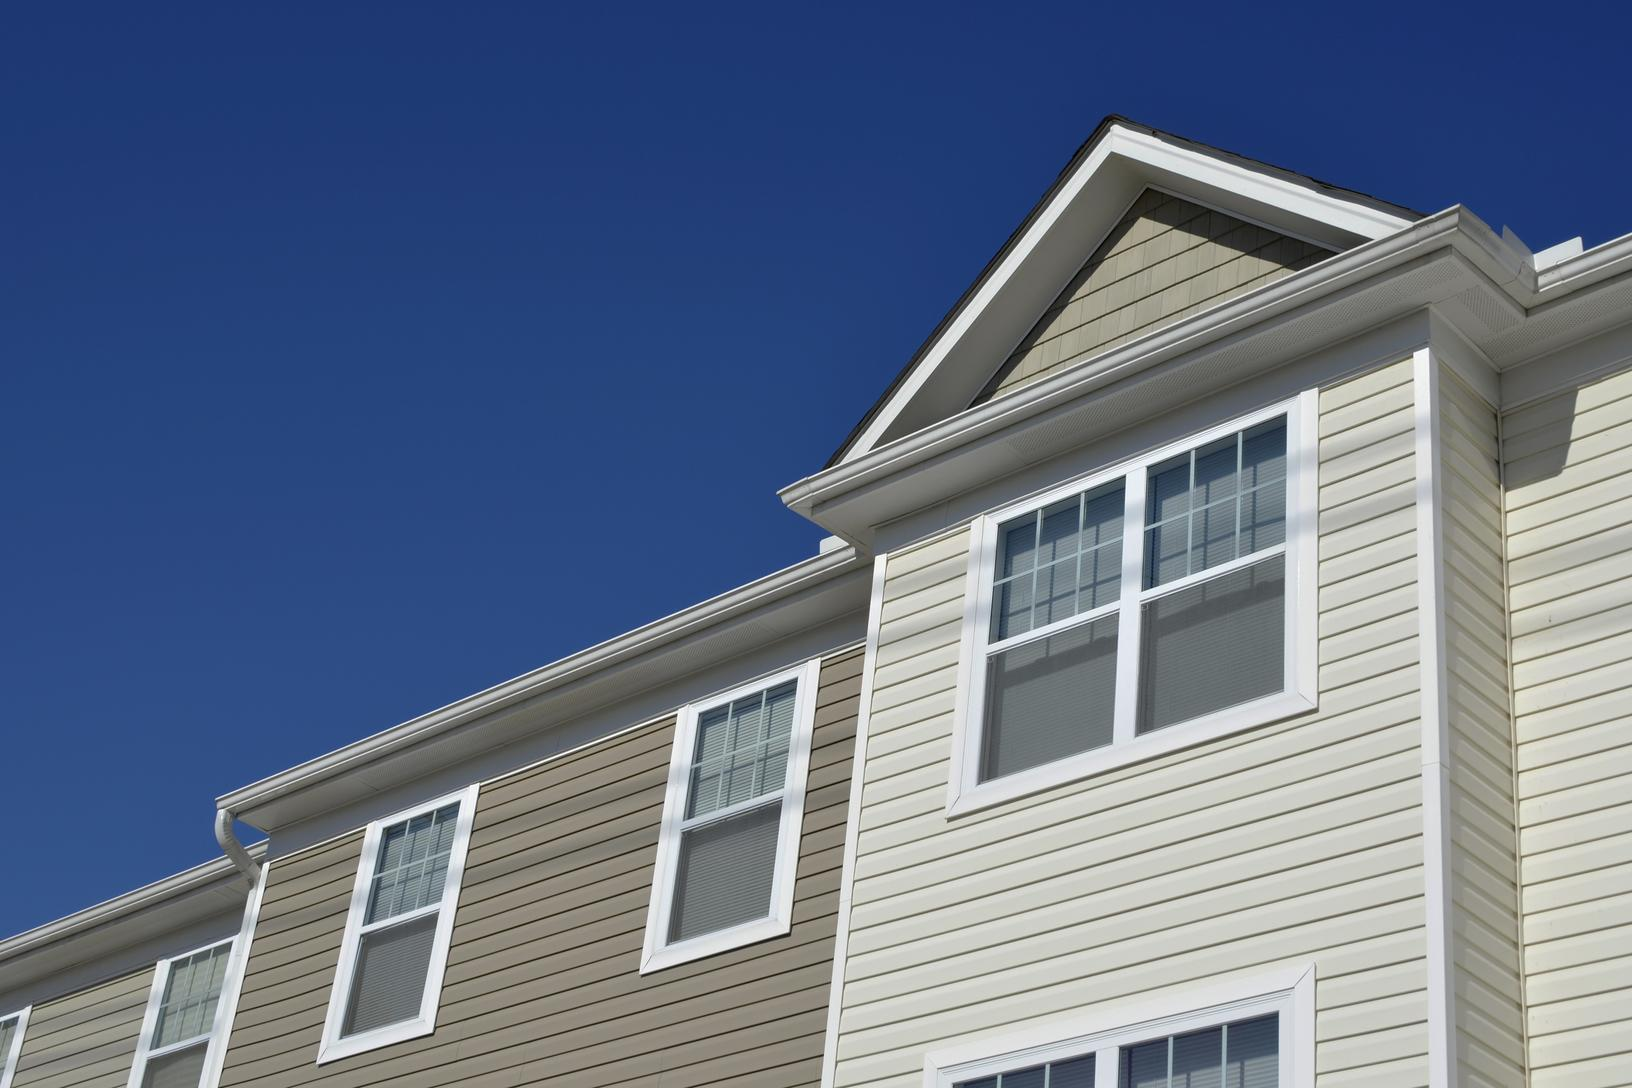 Siding in Southwest Suburbs of Chicago